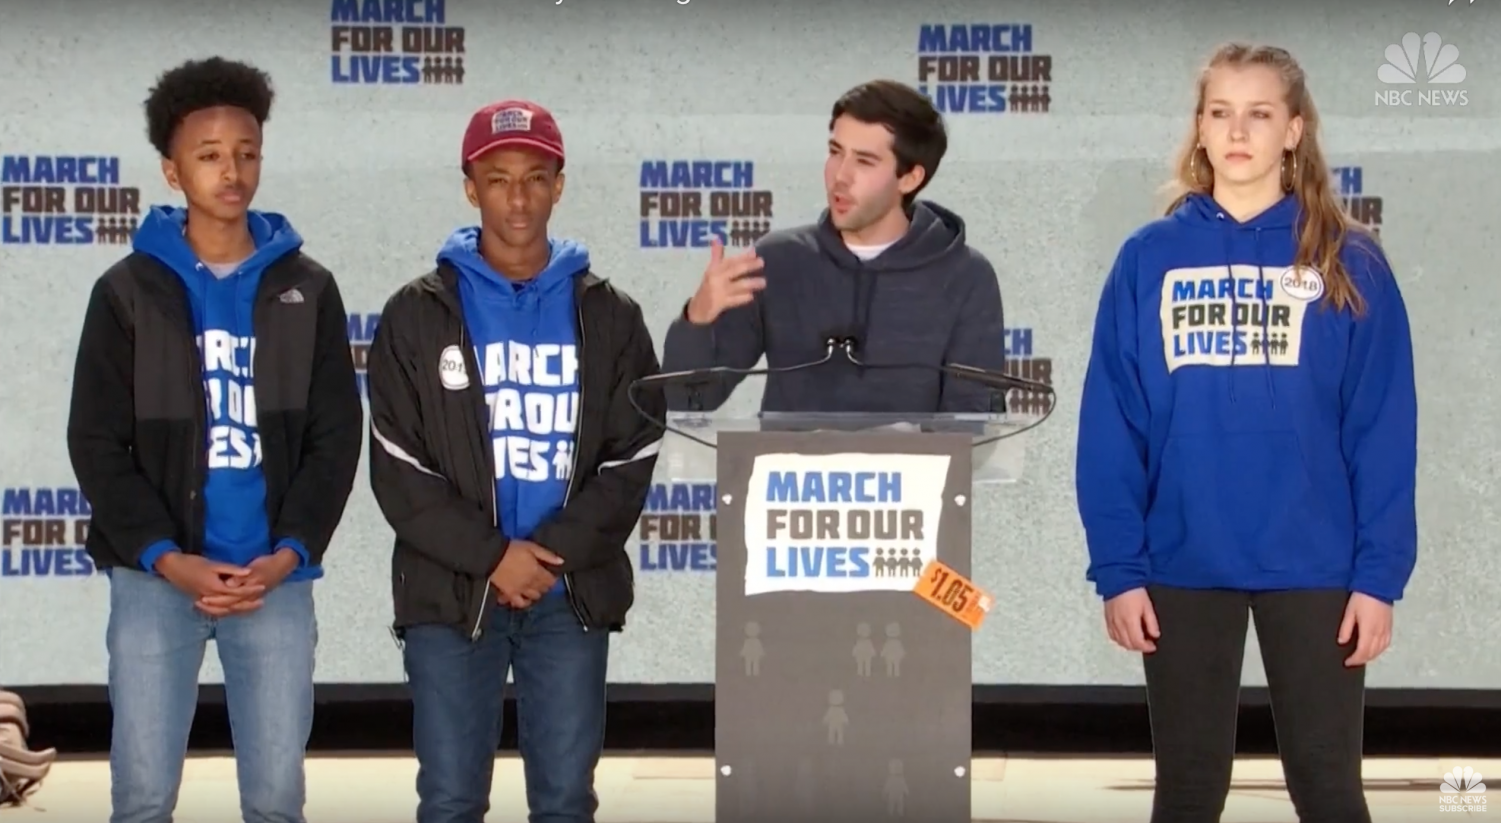 (left to right) Nate Tinbite, Michael Solomon, Matthew Post, and Brenna Levitan, stand on stage at the March For Our Lives.